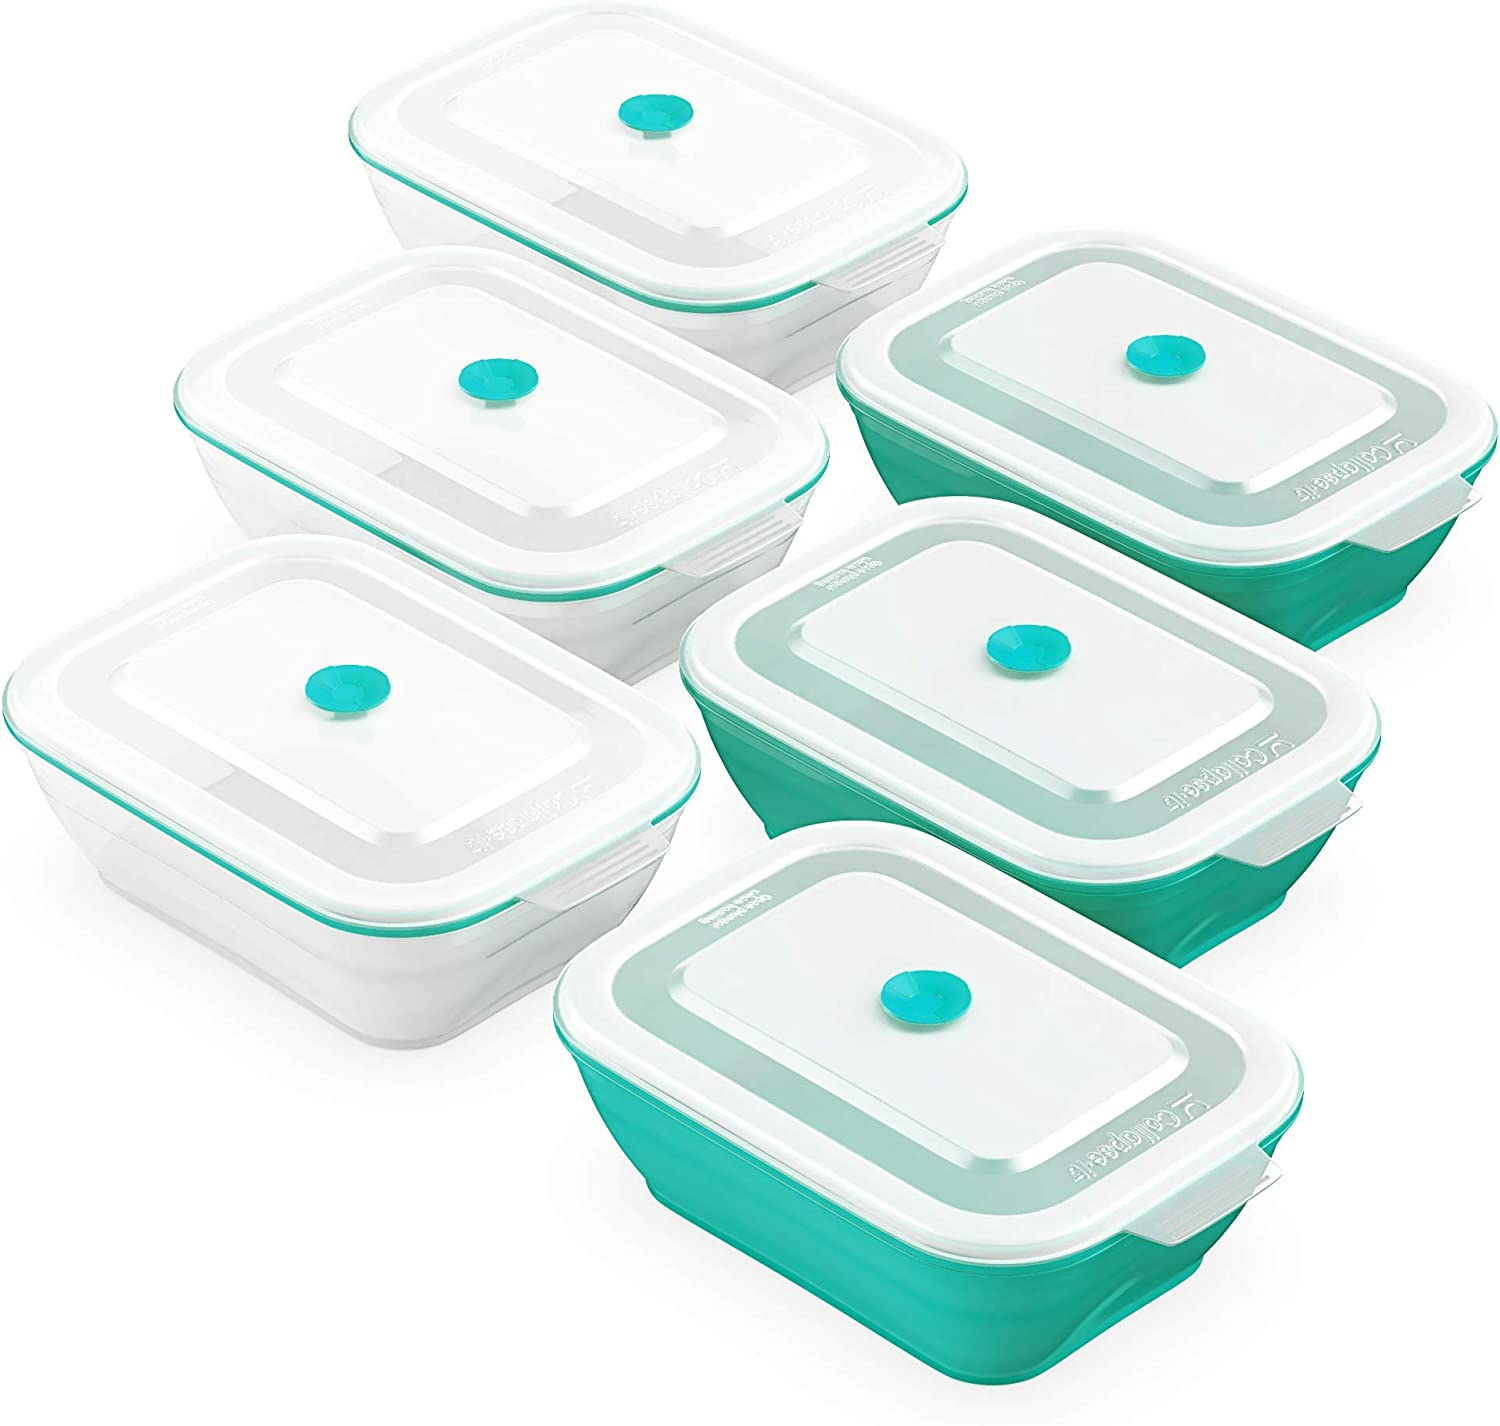 Collapse-it Silicone Food Storage Containers - BPA Free Airtight Silicone Lids Collapsible Lunch Box Containers - Oven, Microwave, Freezer Safe (Teal (6) 3-Cup Set)